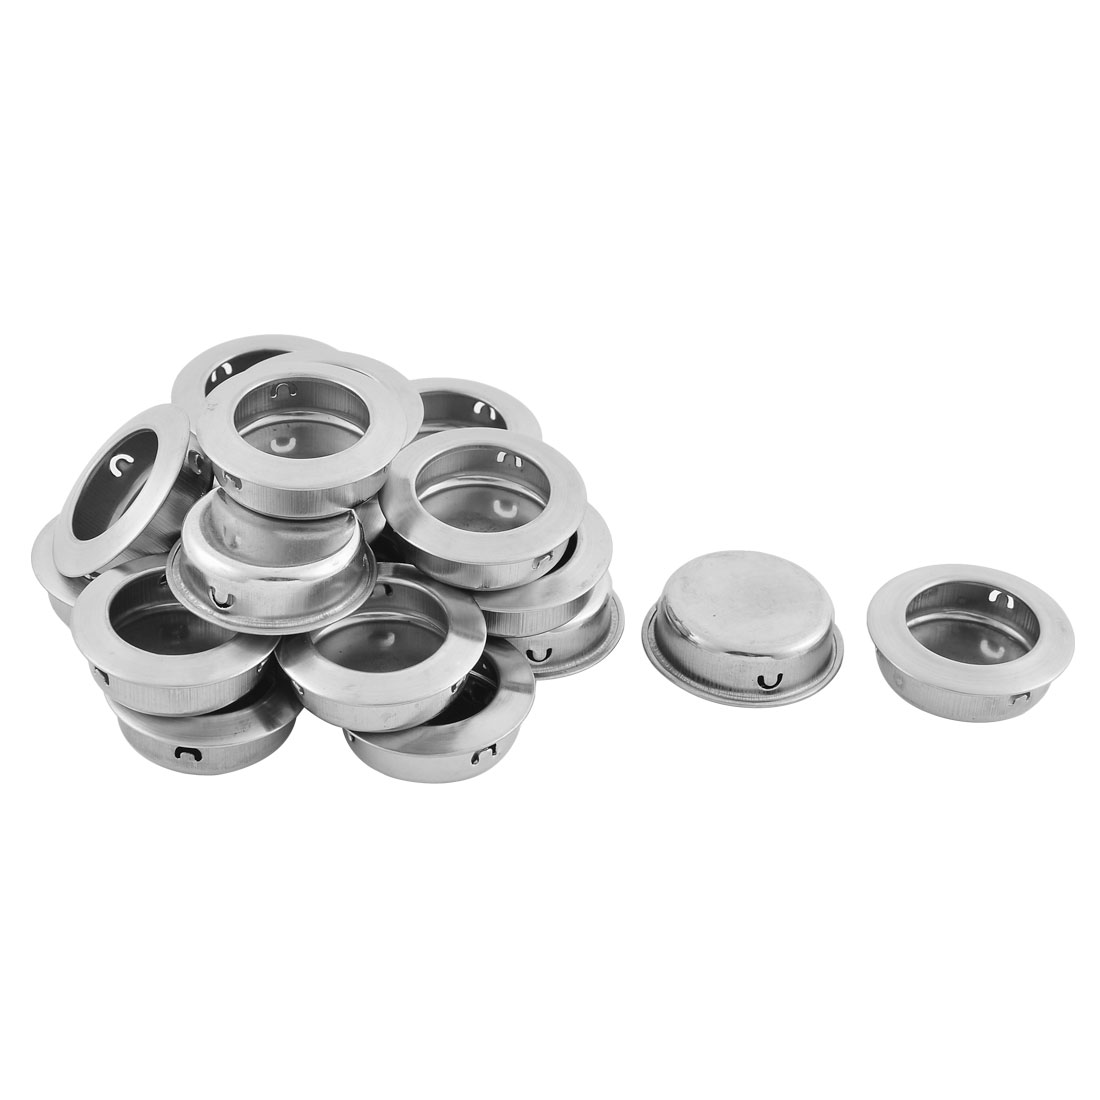 Cupboard Drawer Dresser Rounded Flush Pull Handle Silver Tone 20 PCS